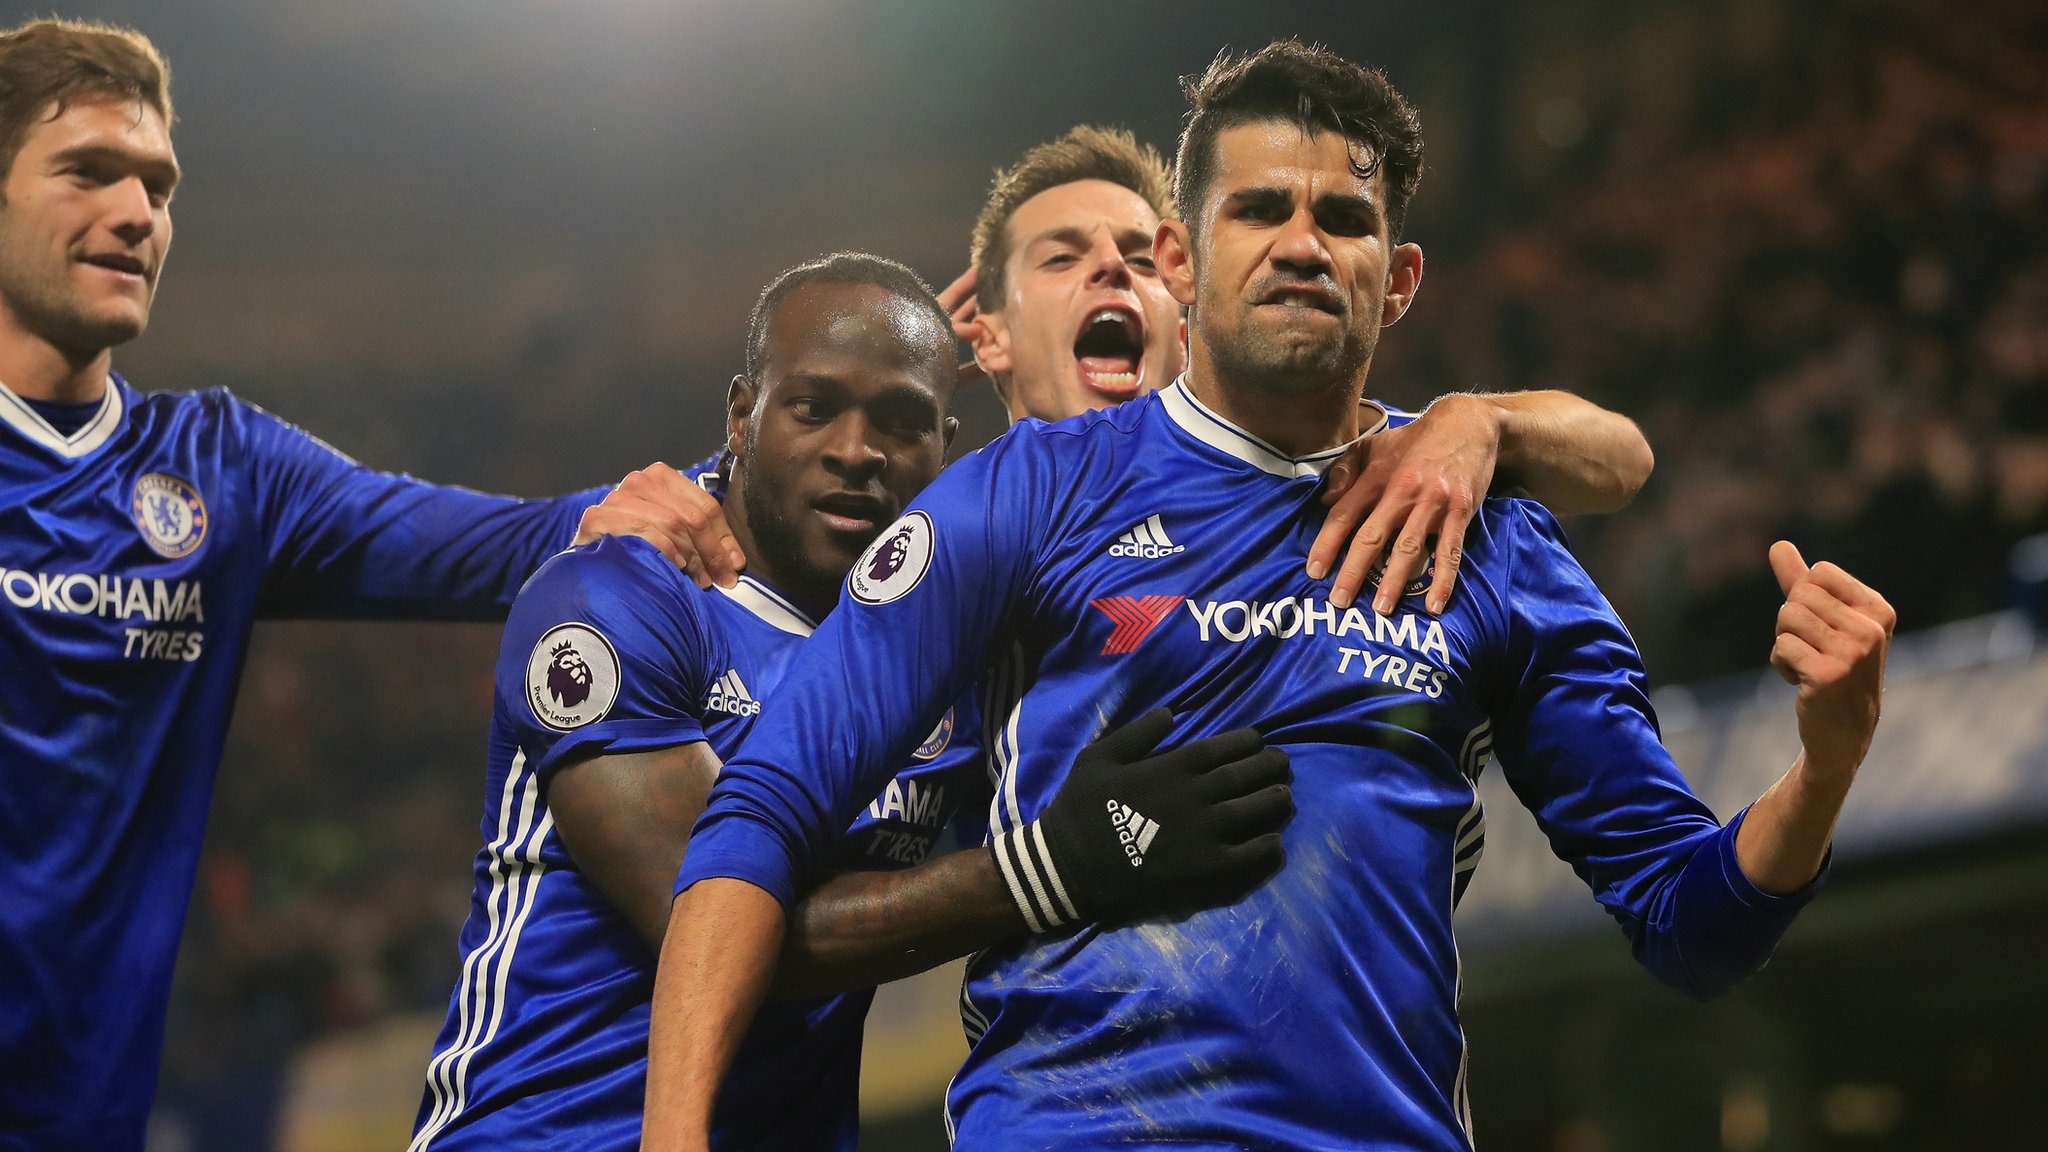 Costa speculation is finished - Chelsea boss Conte